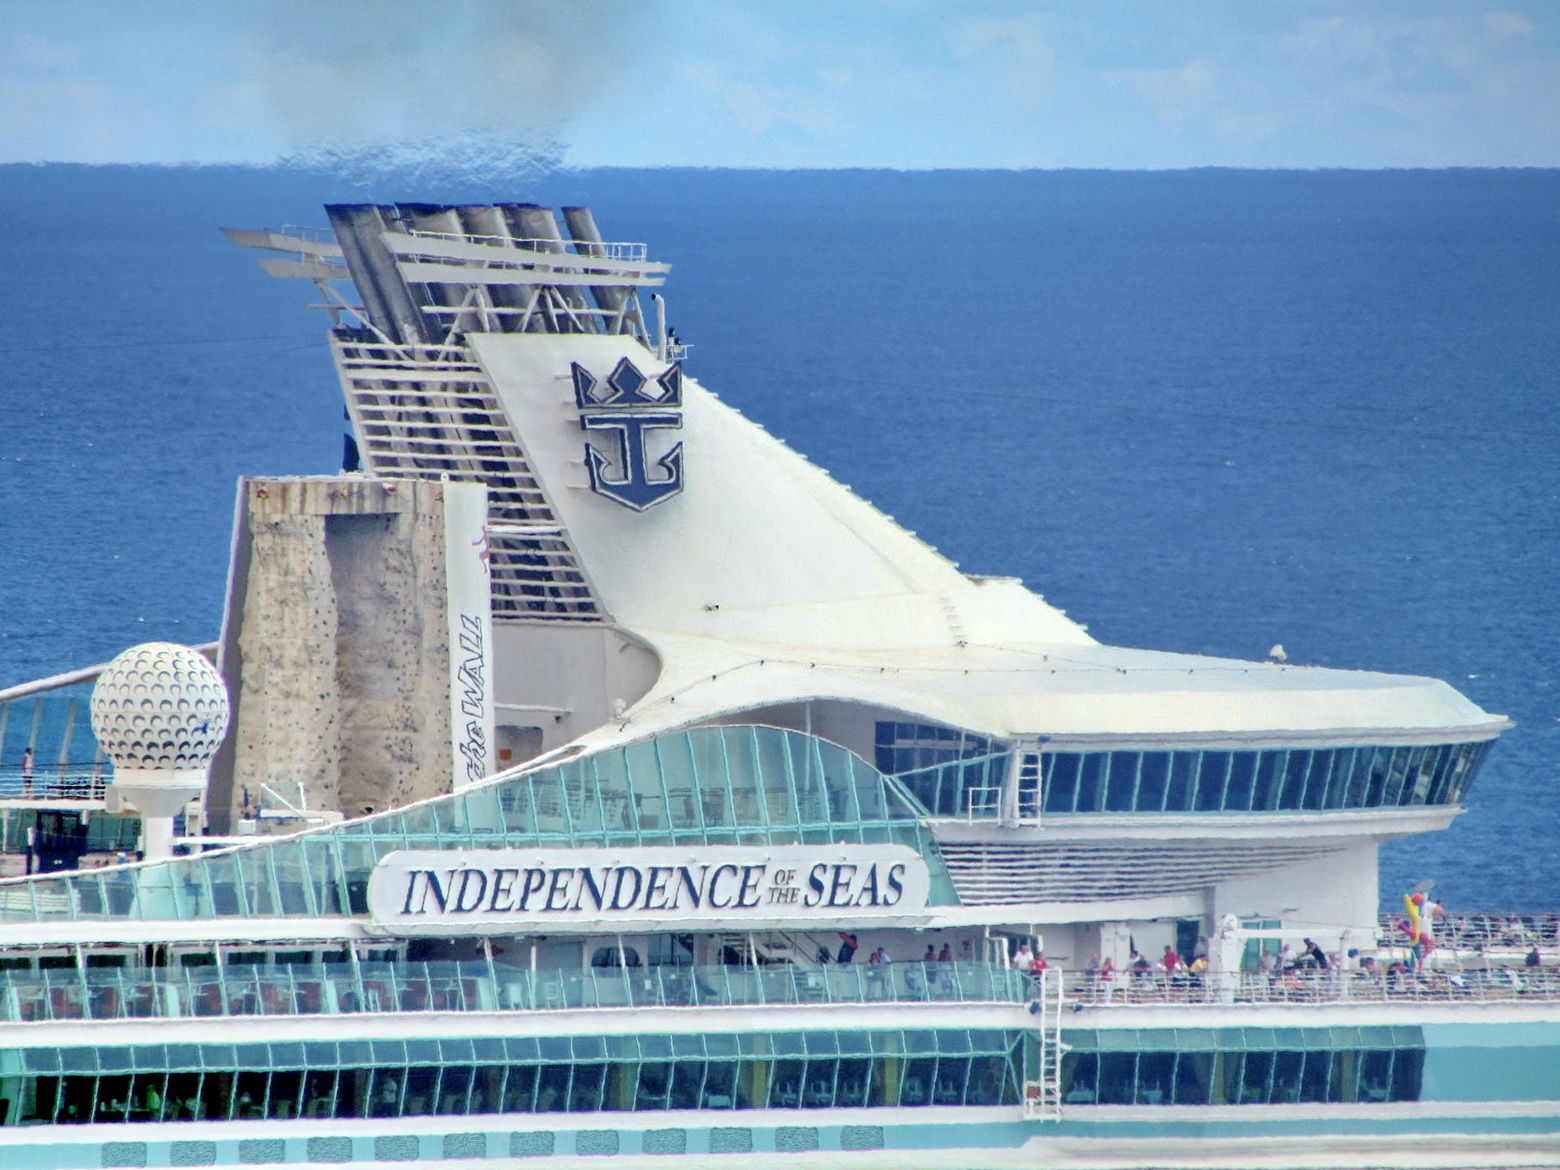 Independence of the seas detail